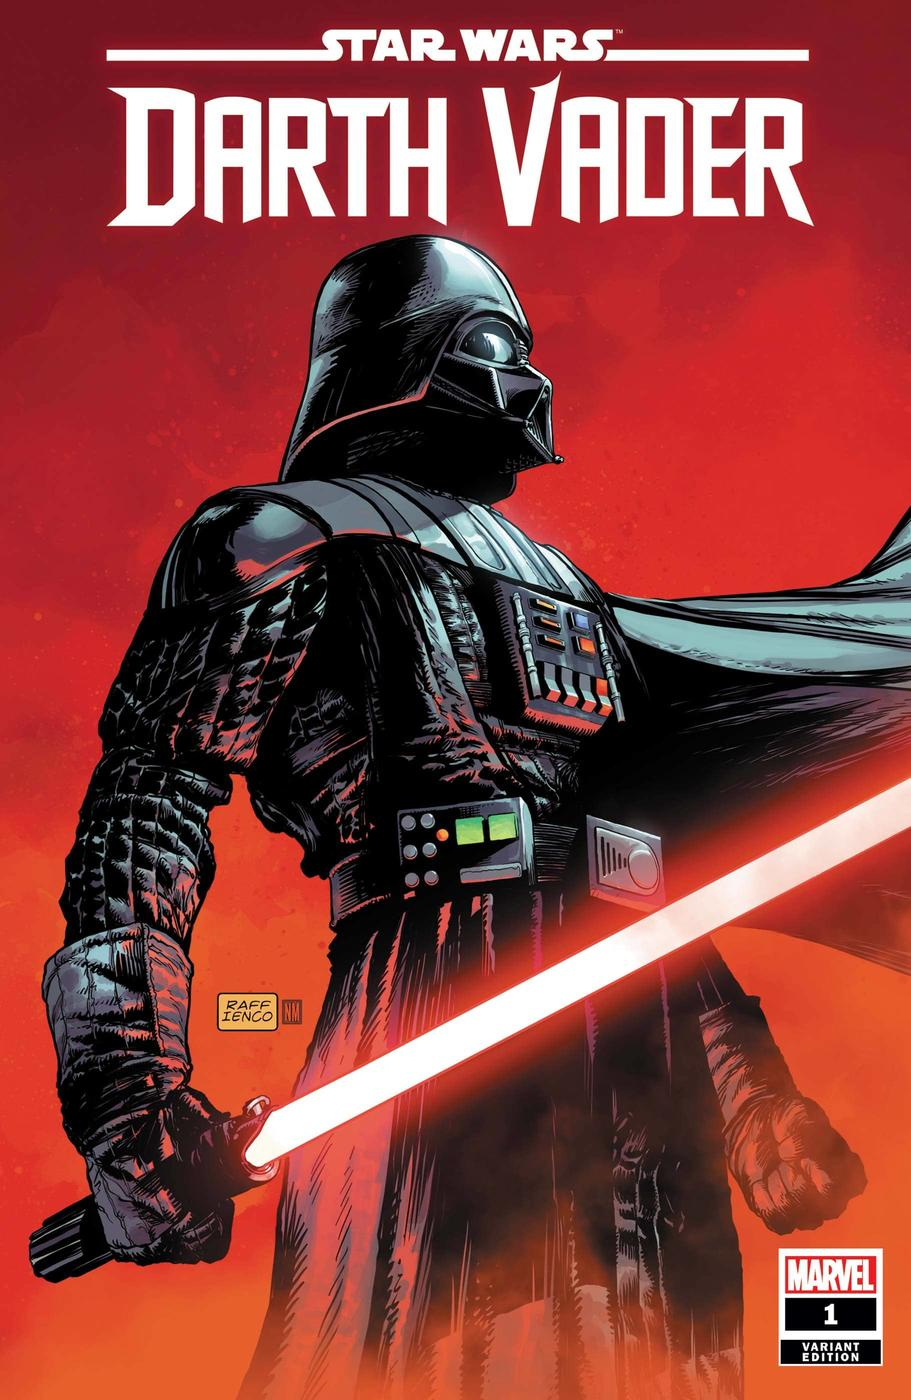 STAR WARS: DARTH VADER #1 variant cover by Raffaele Ienco